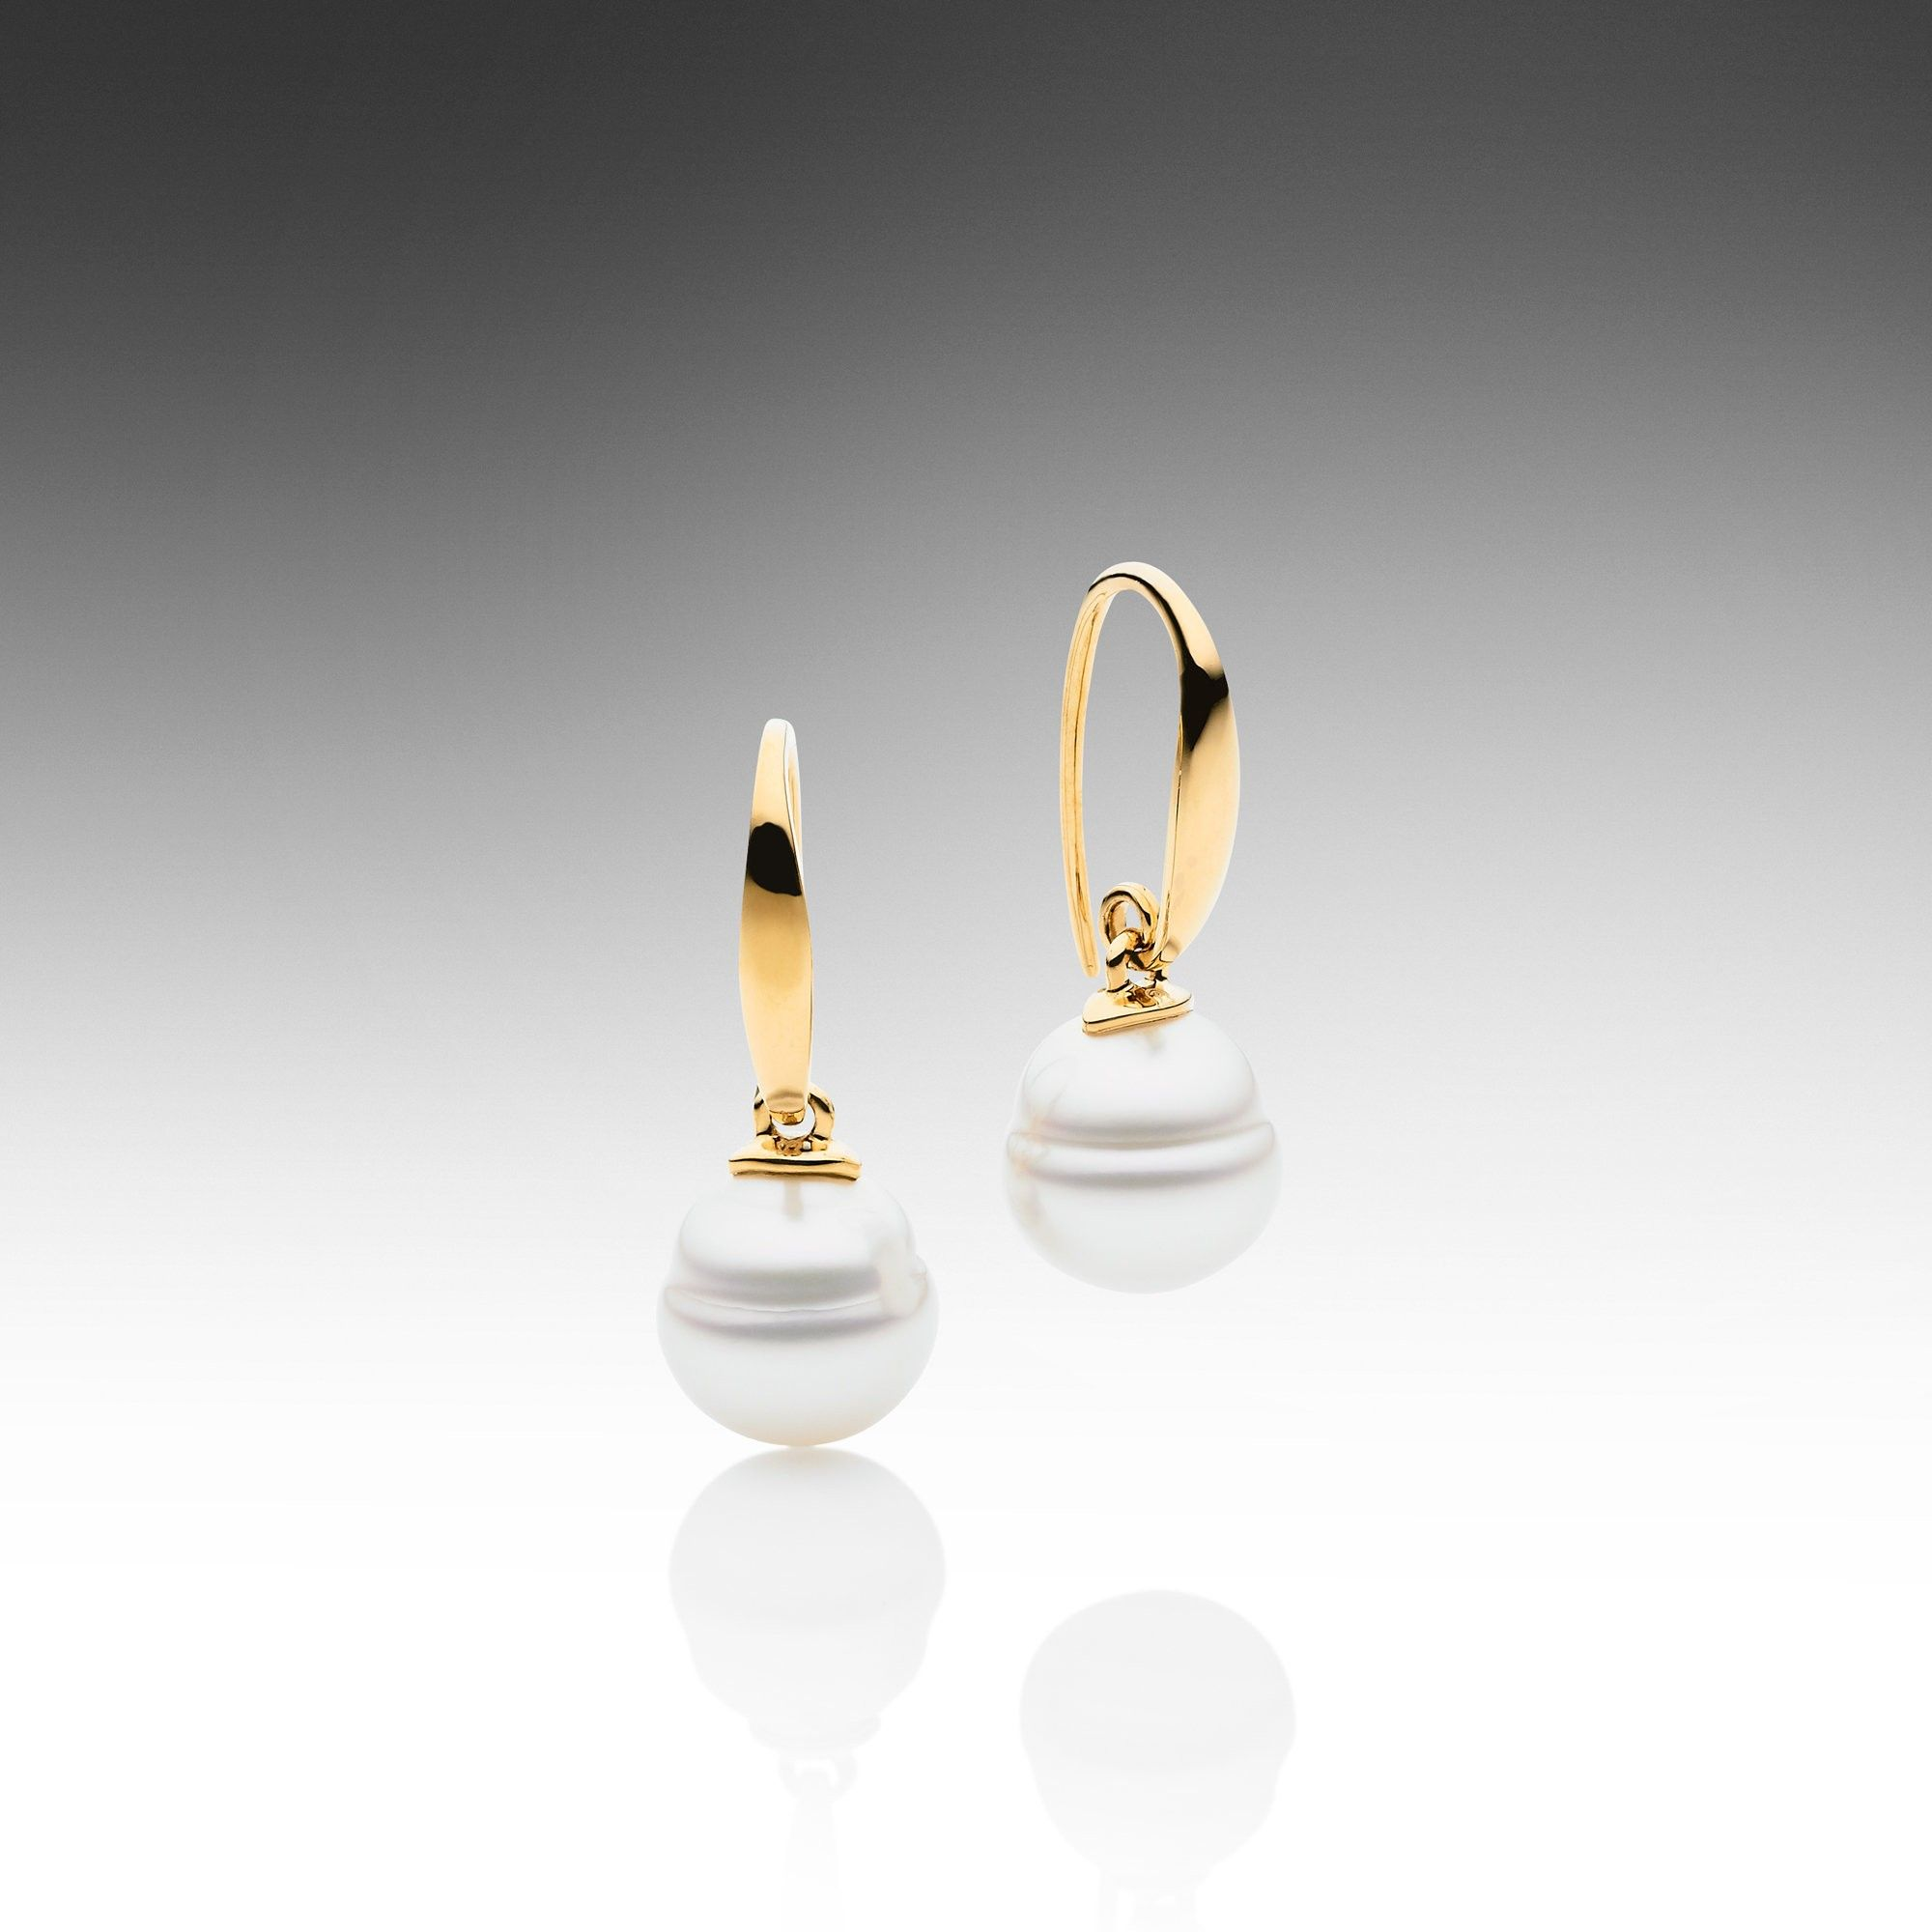 Paspaley Australian South Sea Pearl Earrings Featuring Two Circle Pearls Set In 750 Yellow Gold